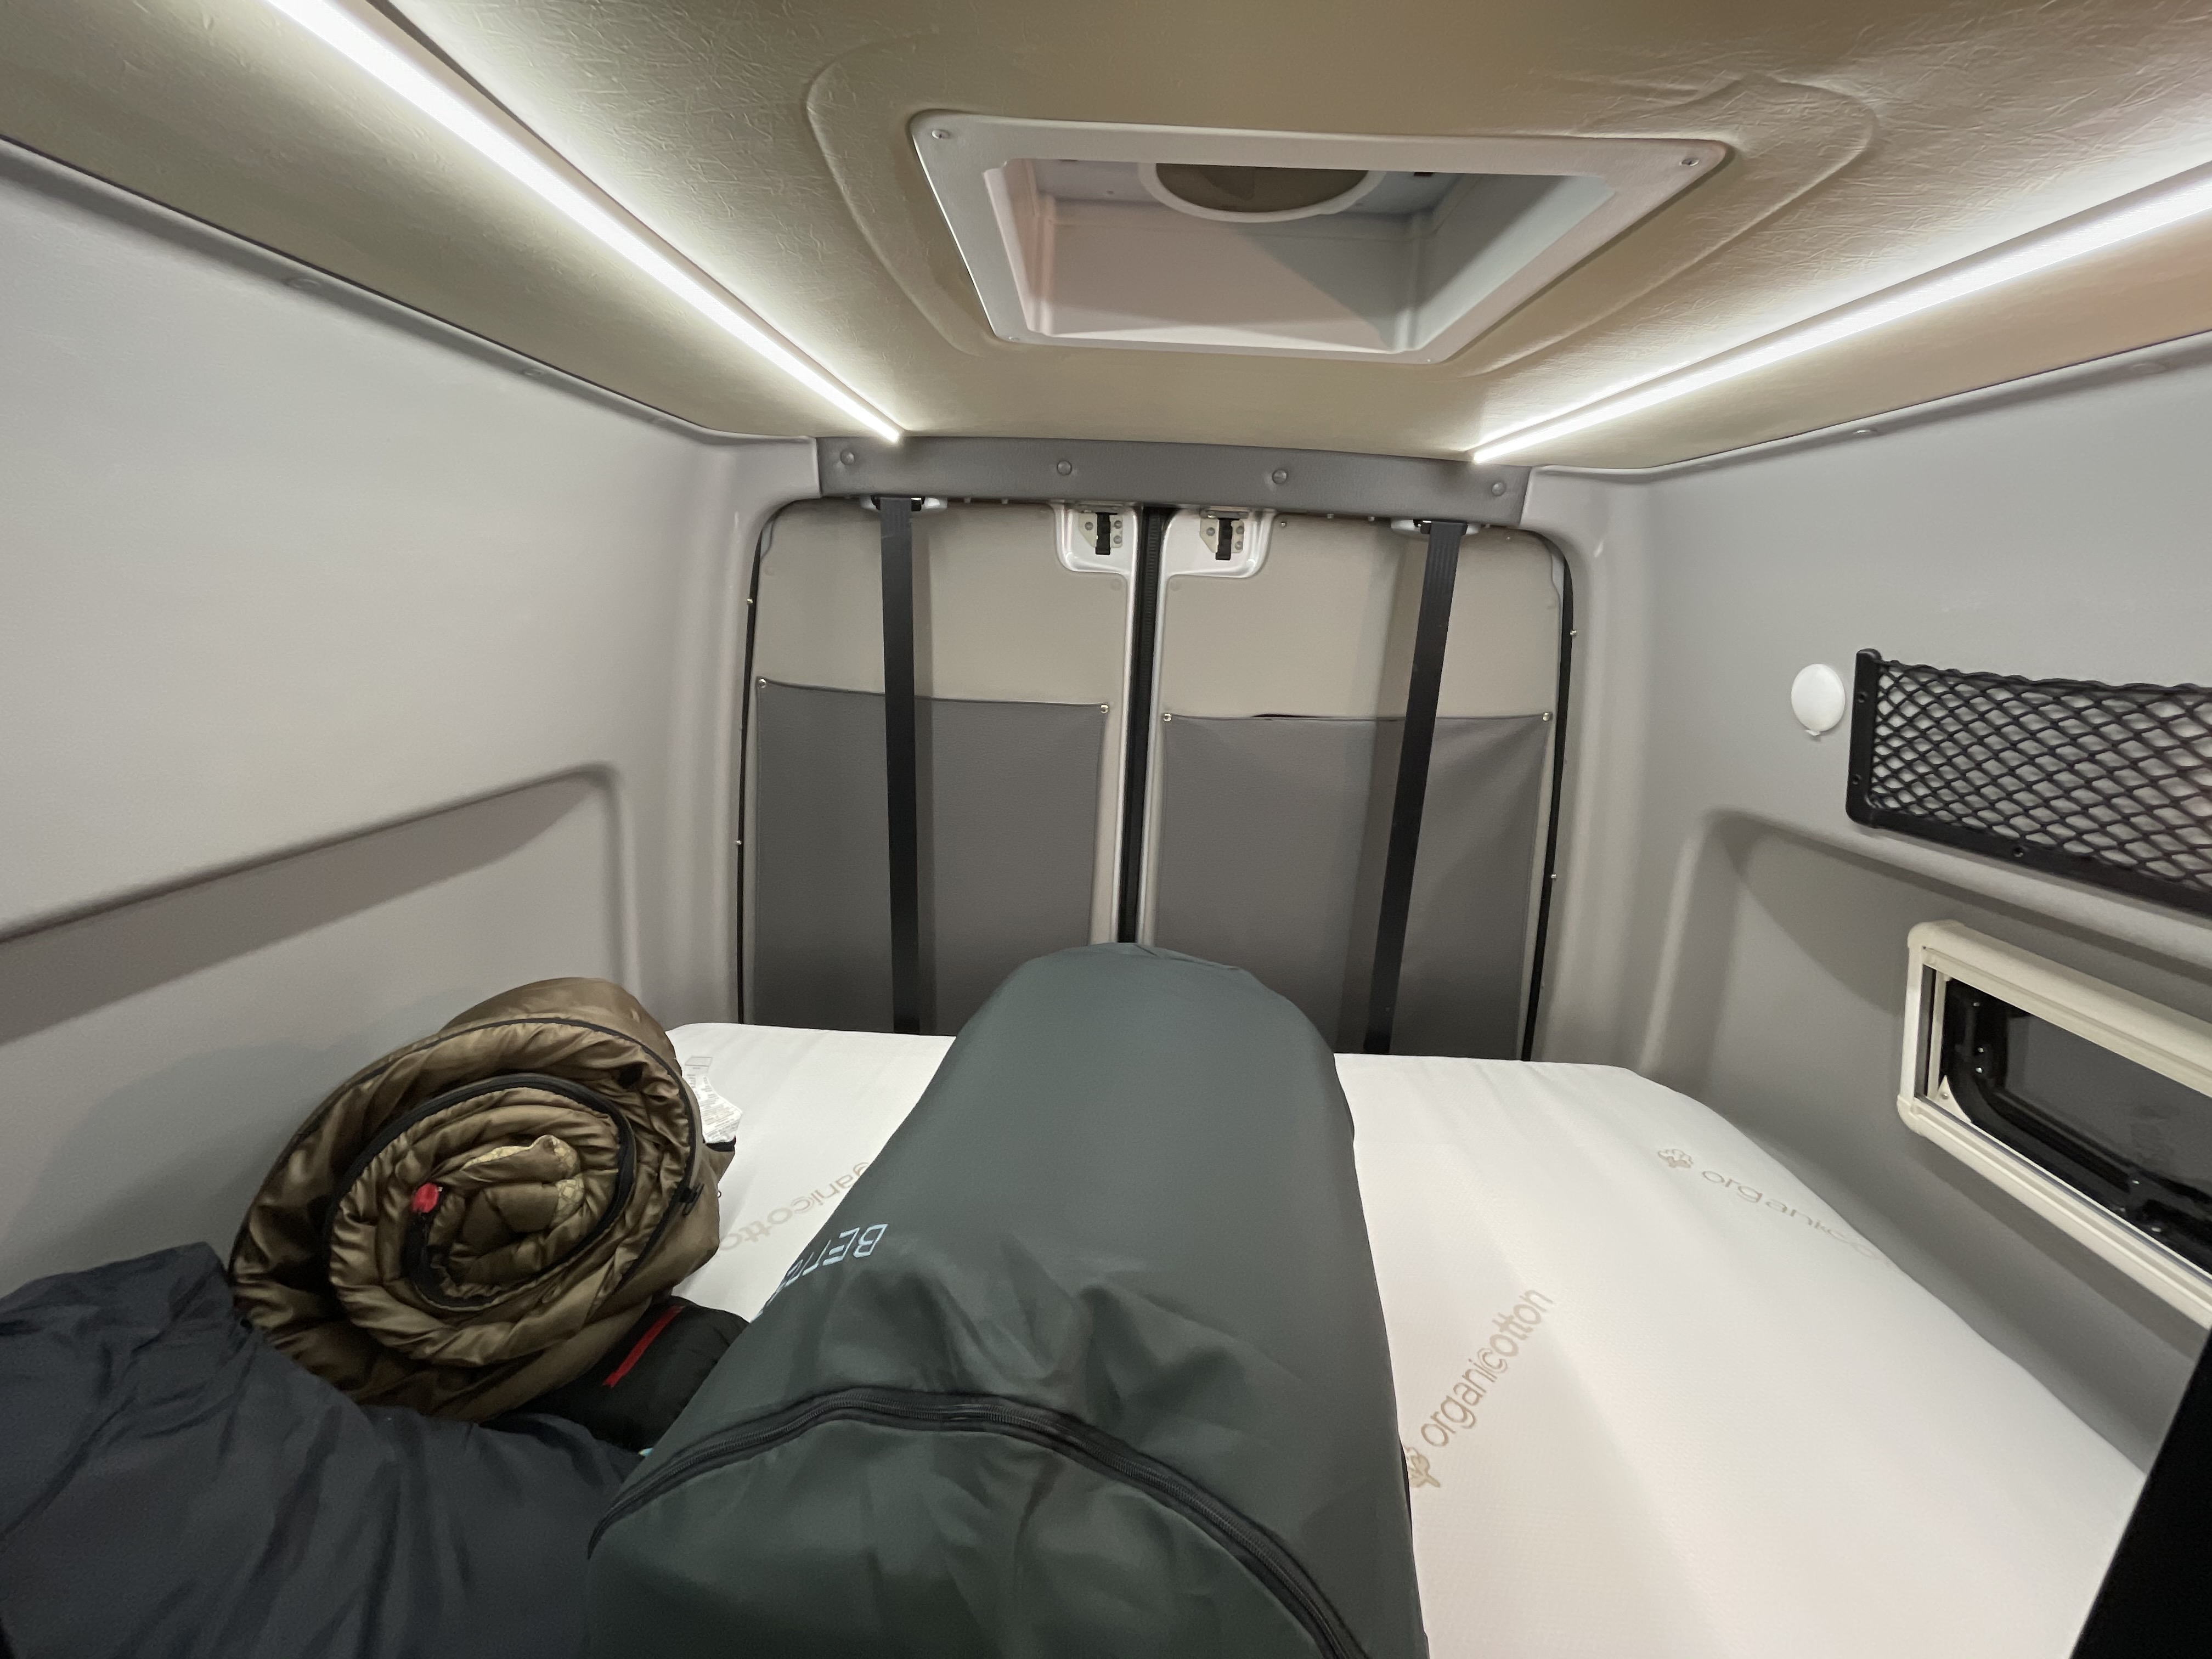 The storage area and sleep zone has a bed that lowers down. It's about a Queen size. And with the van's popouts, you get a full length bed.. Winnebago Revel 2018